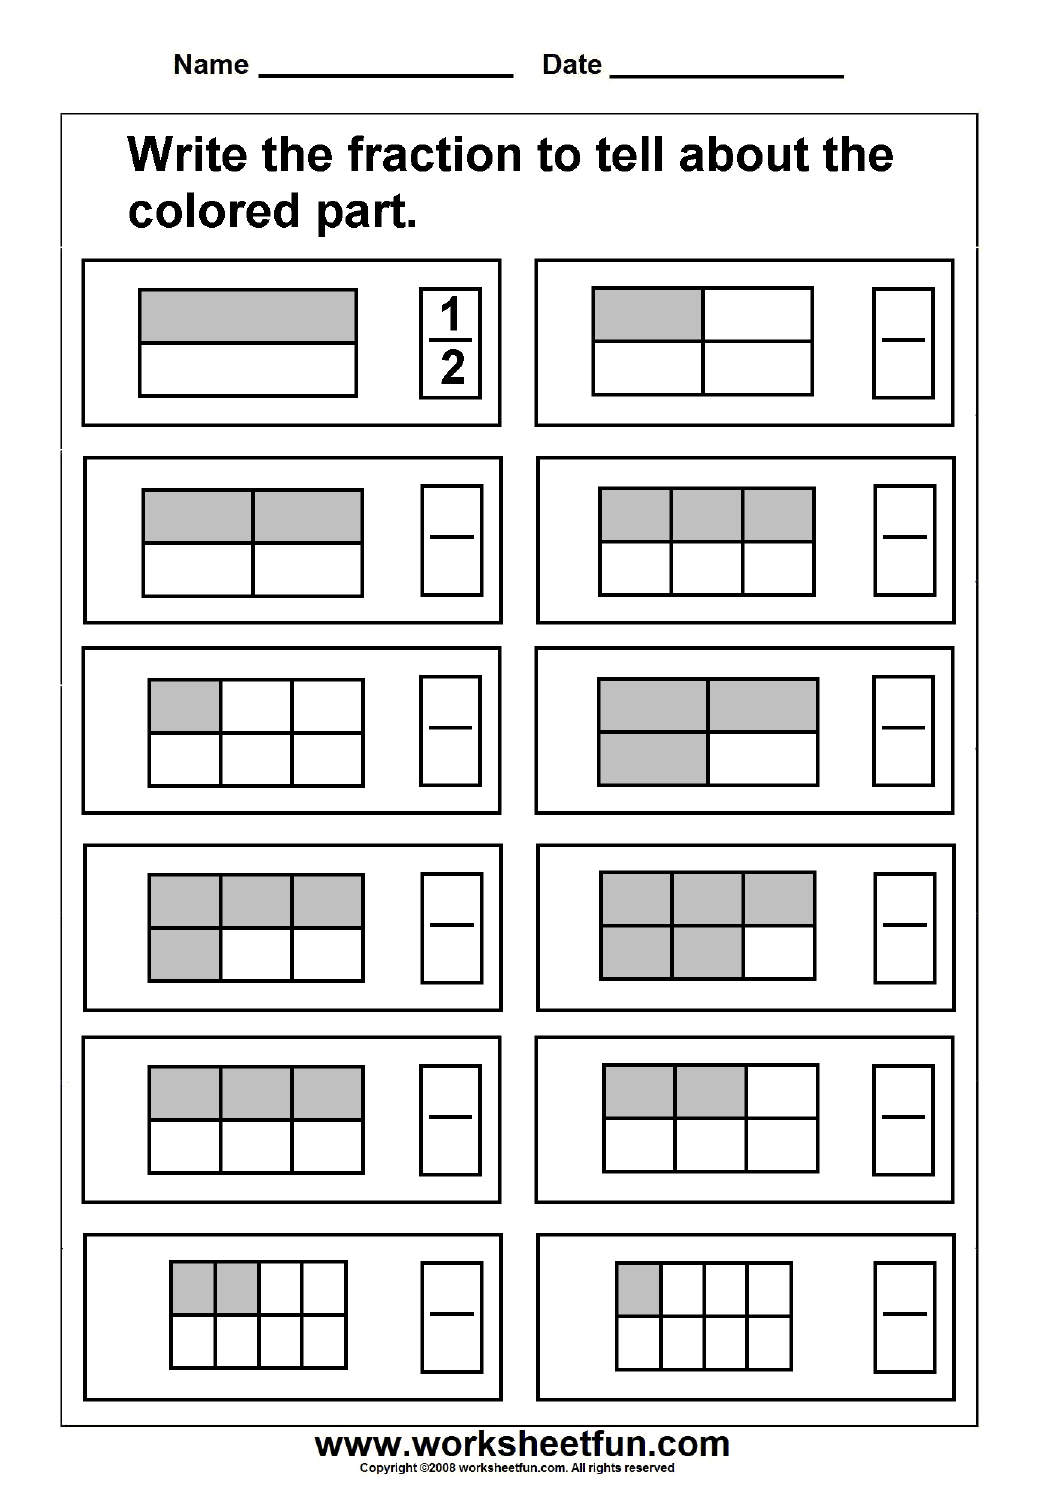 Fraction / Free Printable Worksheets – Worksheetfun | Free Printable Fraction Worksheets